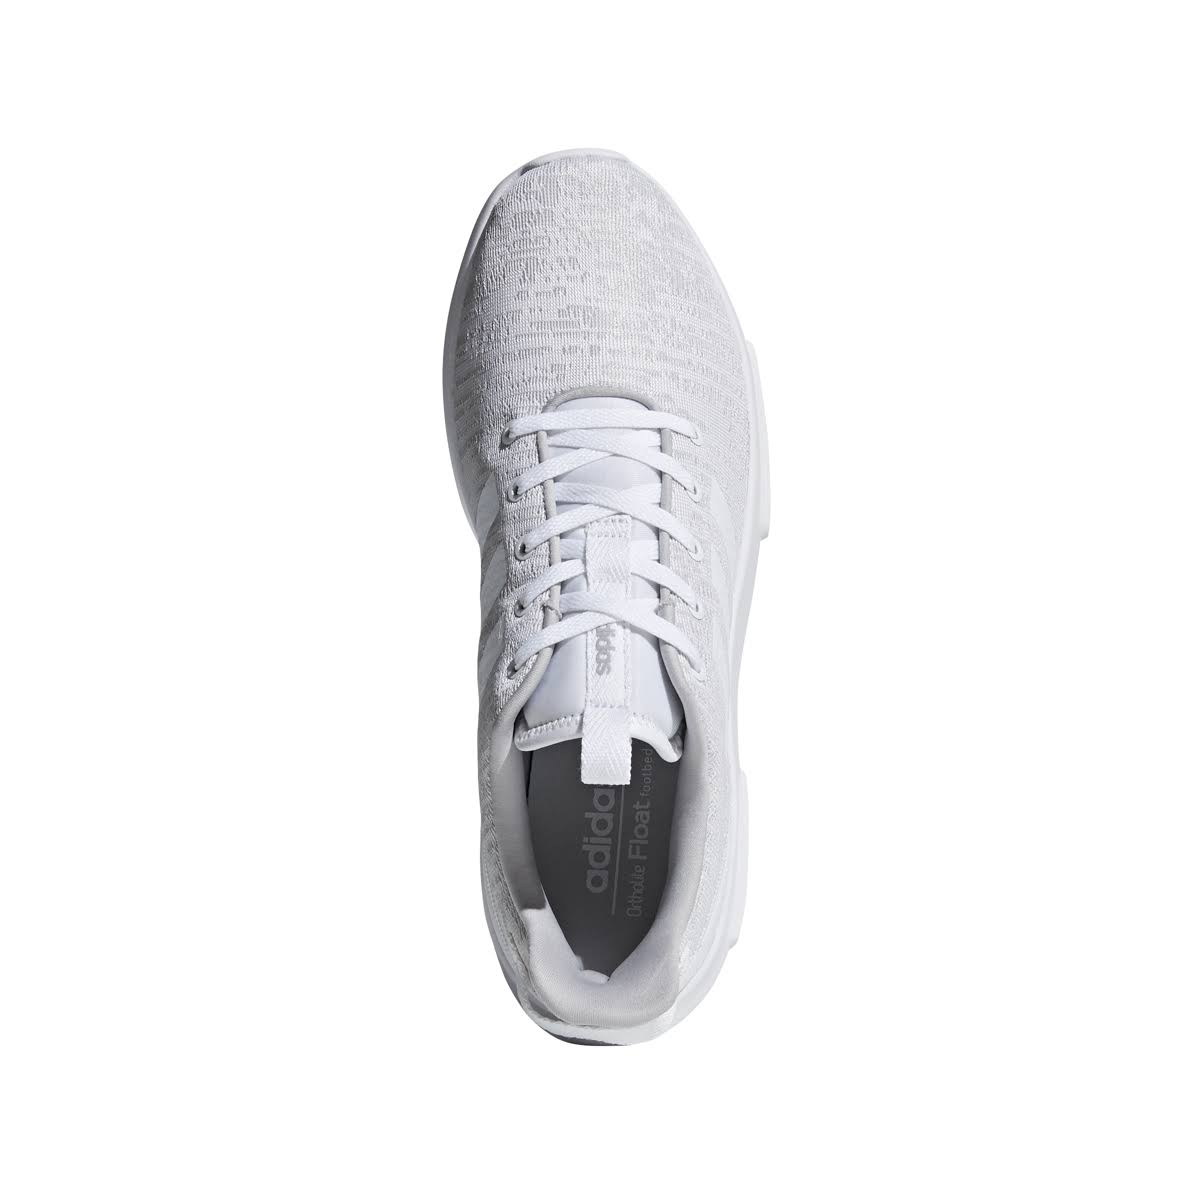 Tr Originales Racer Adidas Grey Hombres 13 Cloudfoam Shoes EUOOnHTq